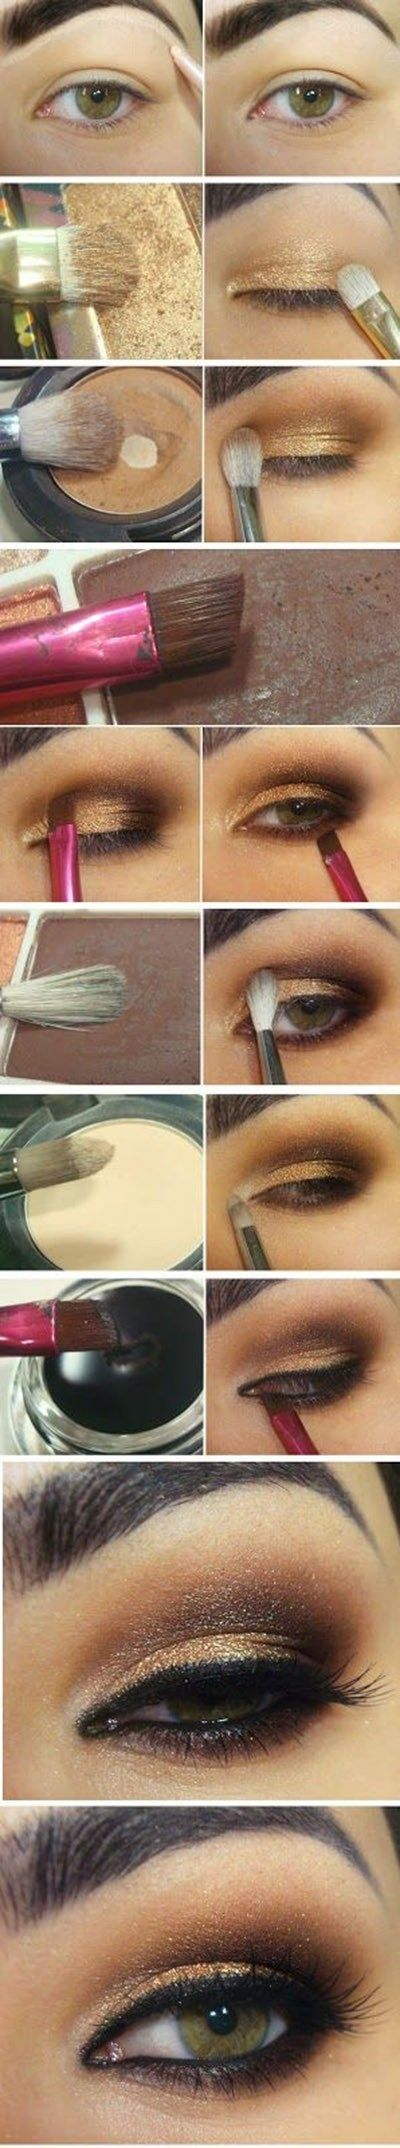 Step by step smokey eye makeup tutorials tutorials pinterest step by step smokey eye makeup tutorials baditri Image collections